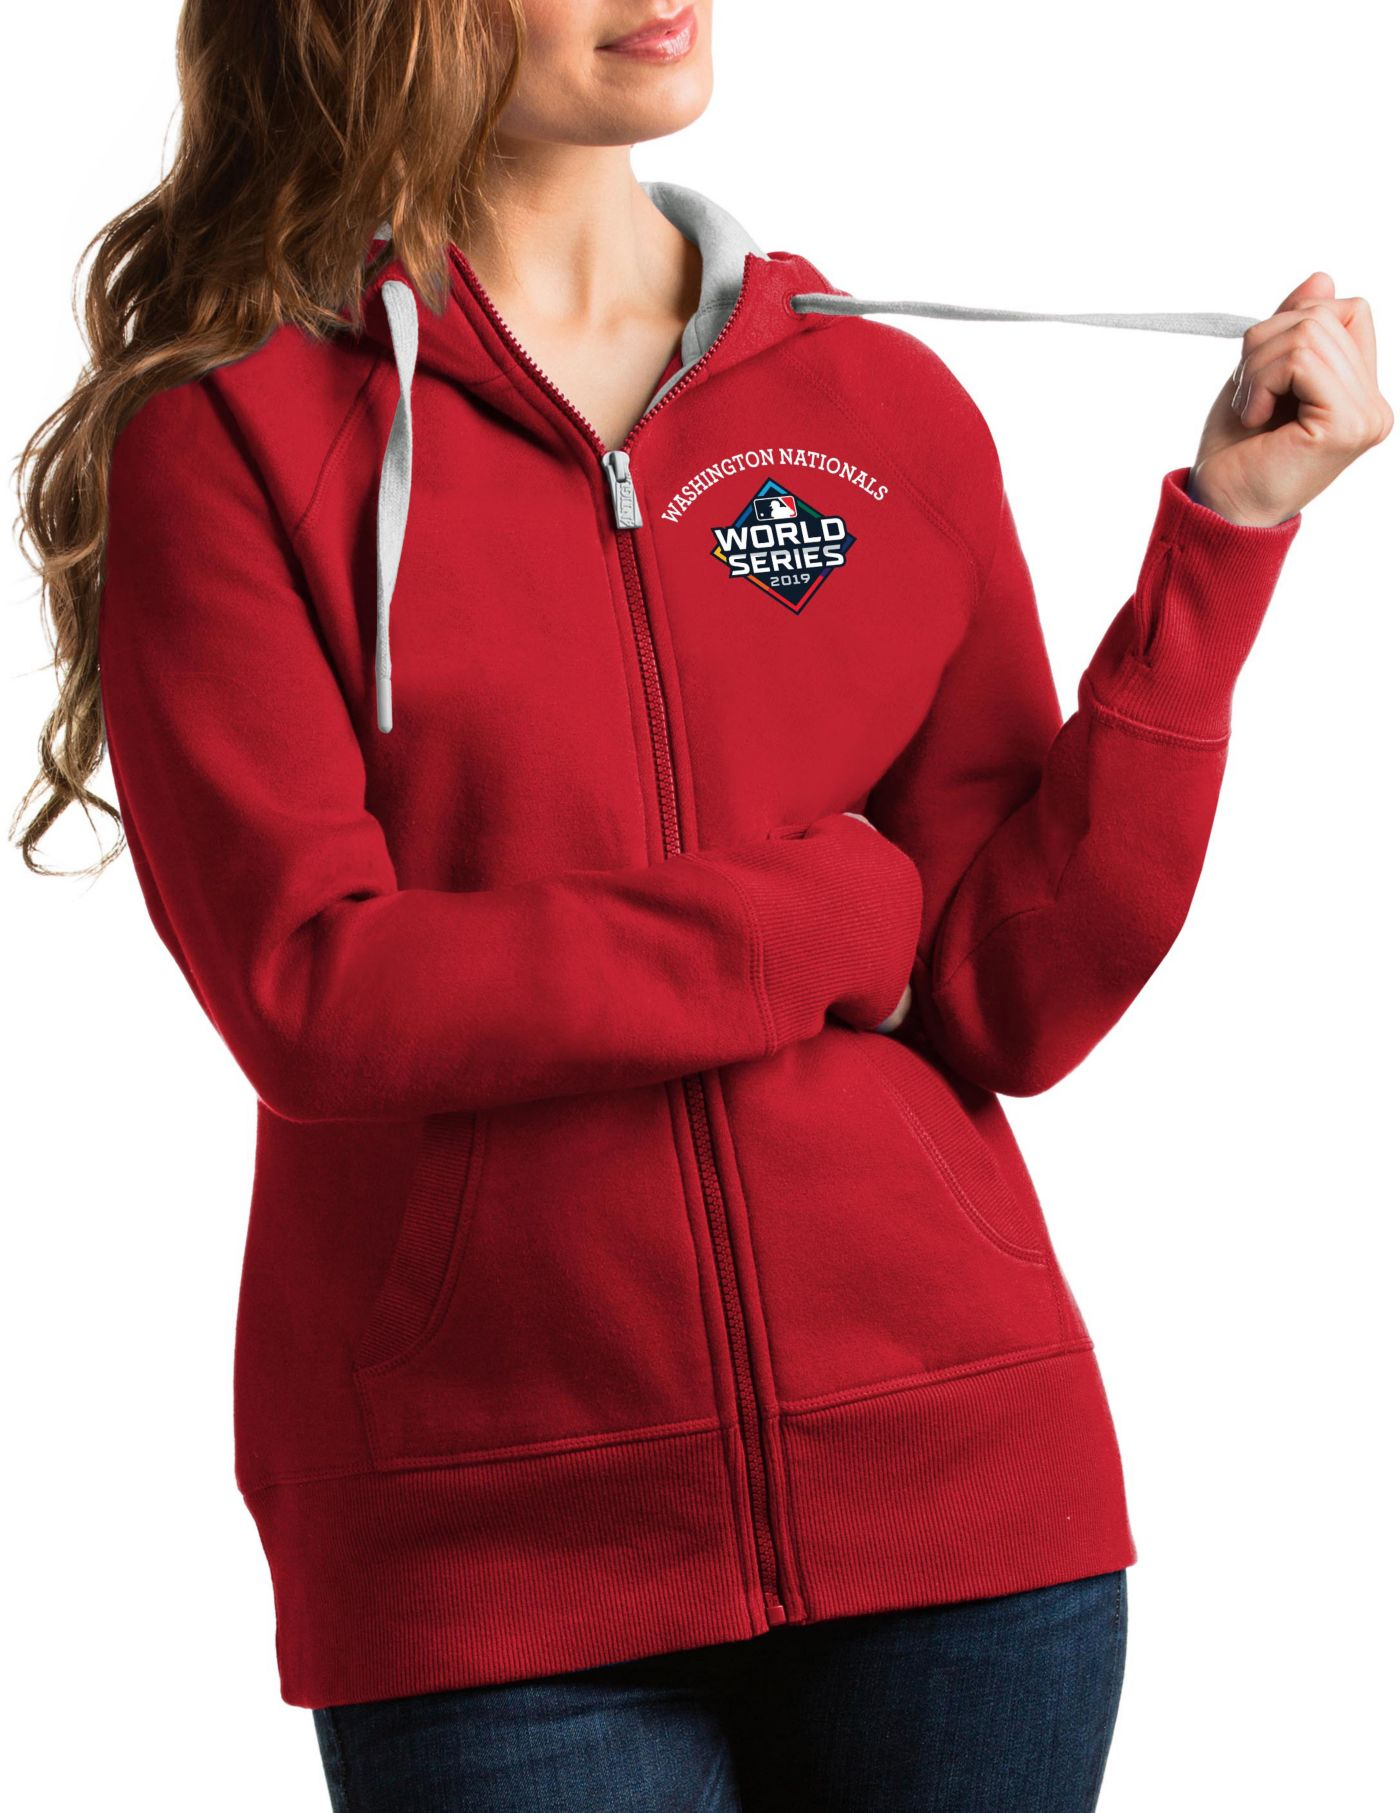 Antigua Women's 2019 World Series Washington Nationals Victory Full-Zip Sweatshirt